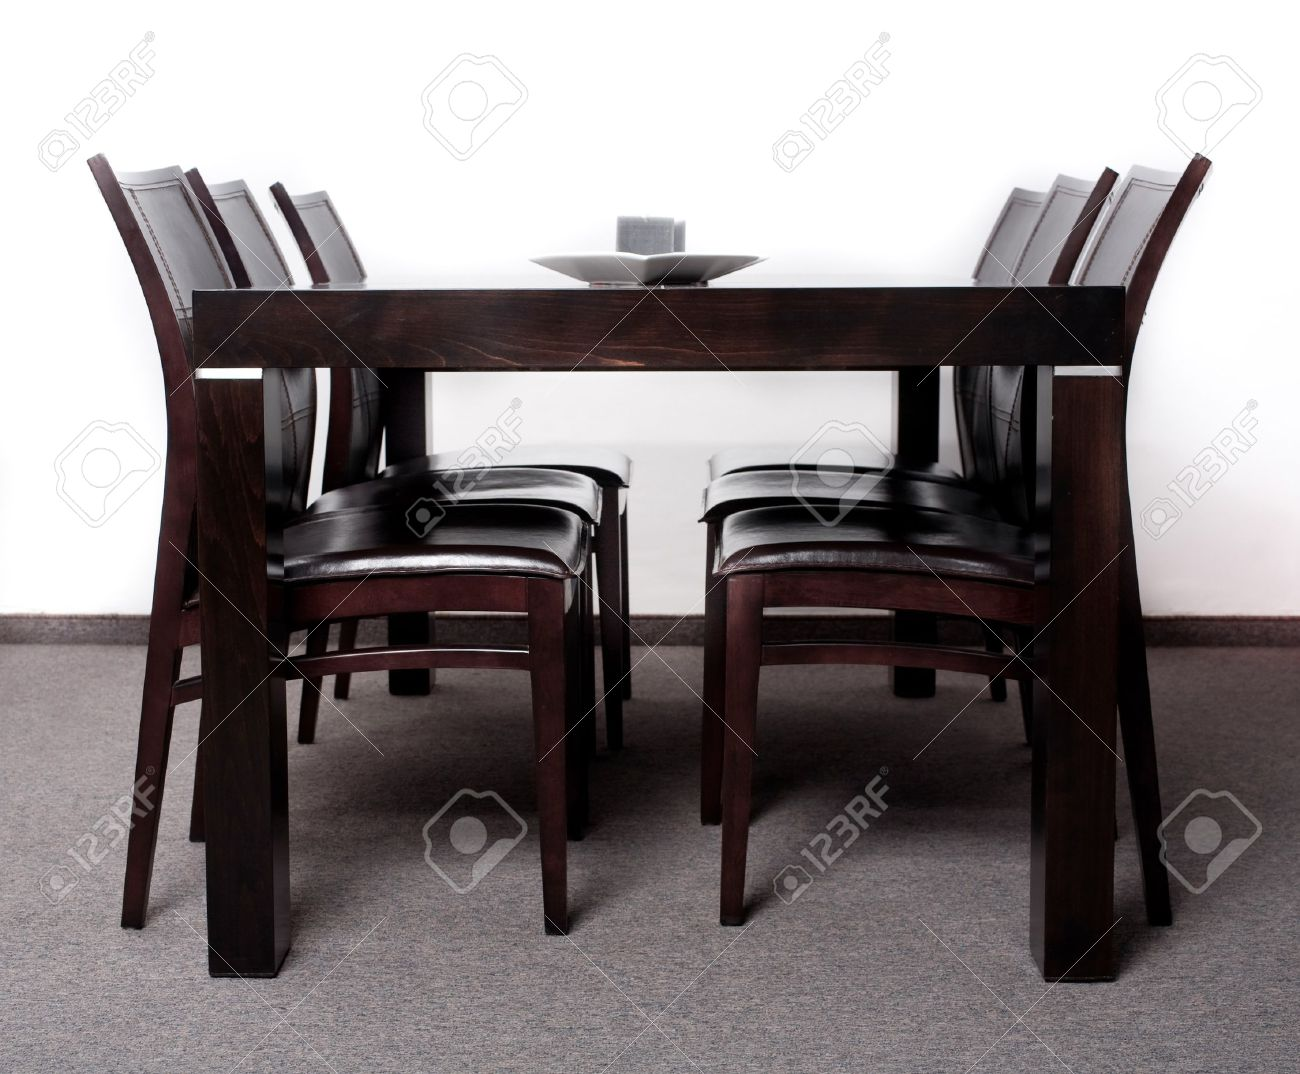 Modern wooden chairs for dining table - Modern Wooden Finished Dining Table With Six Chair Set Stock Photo 7673534